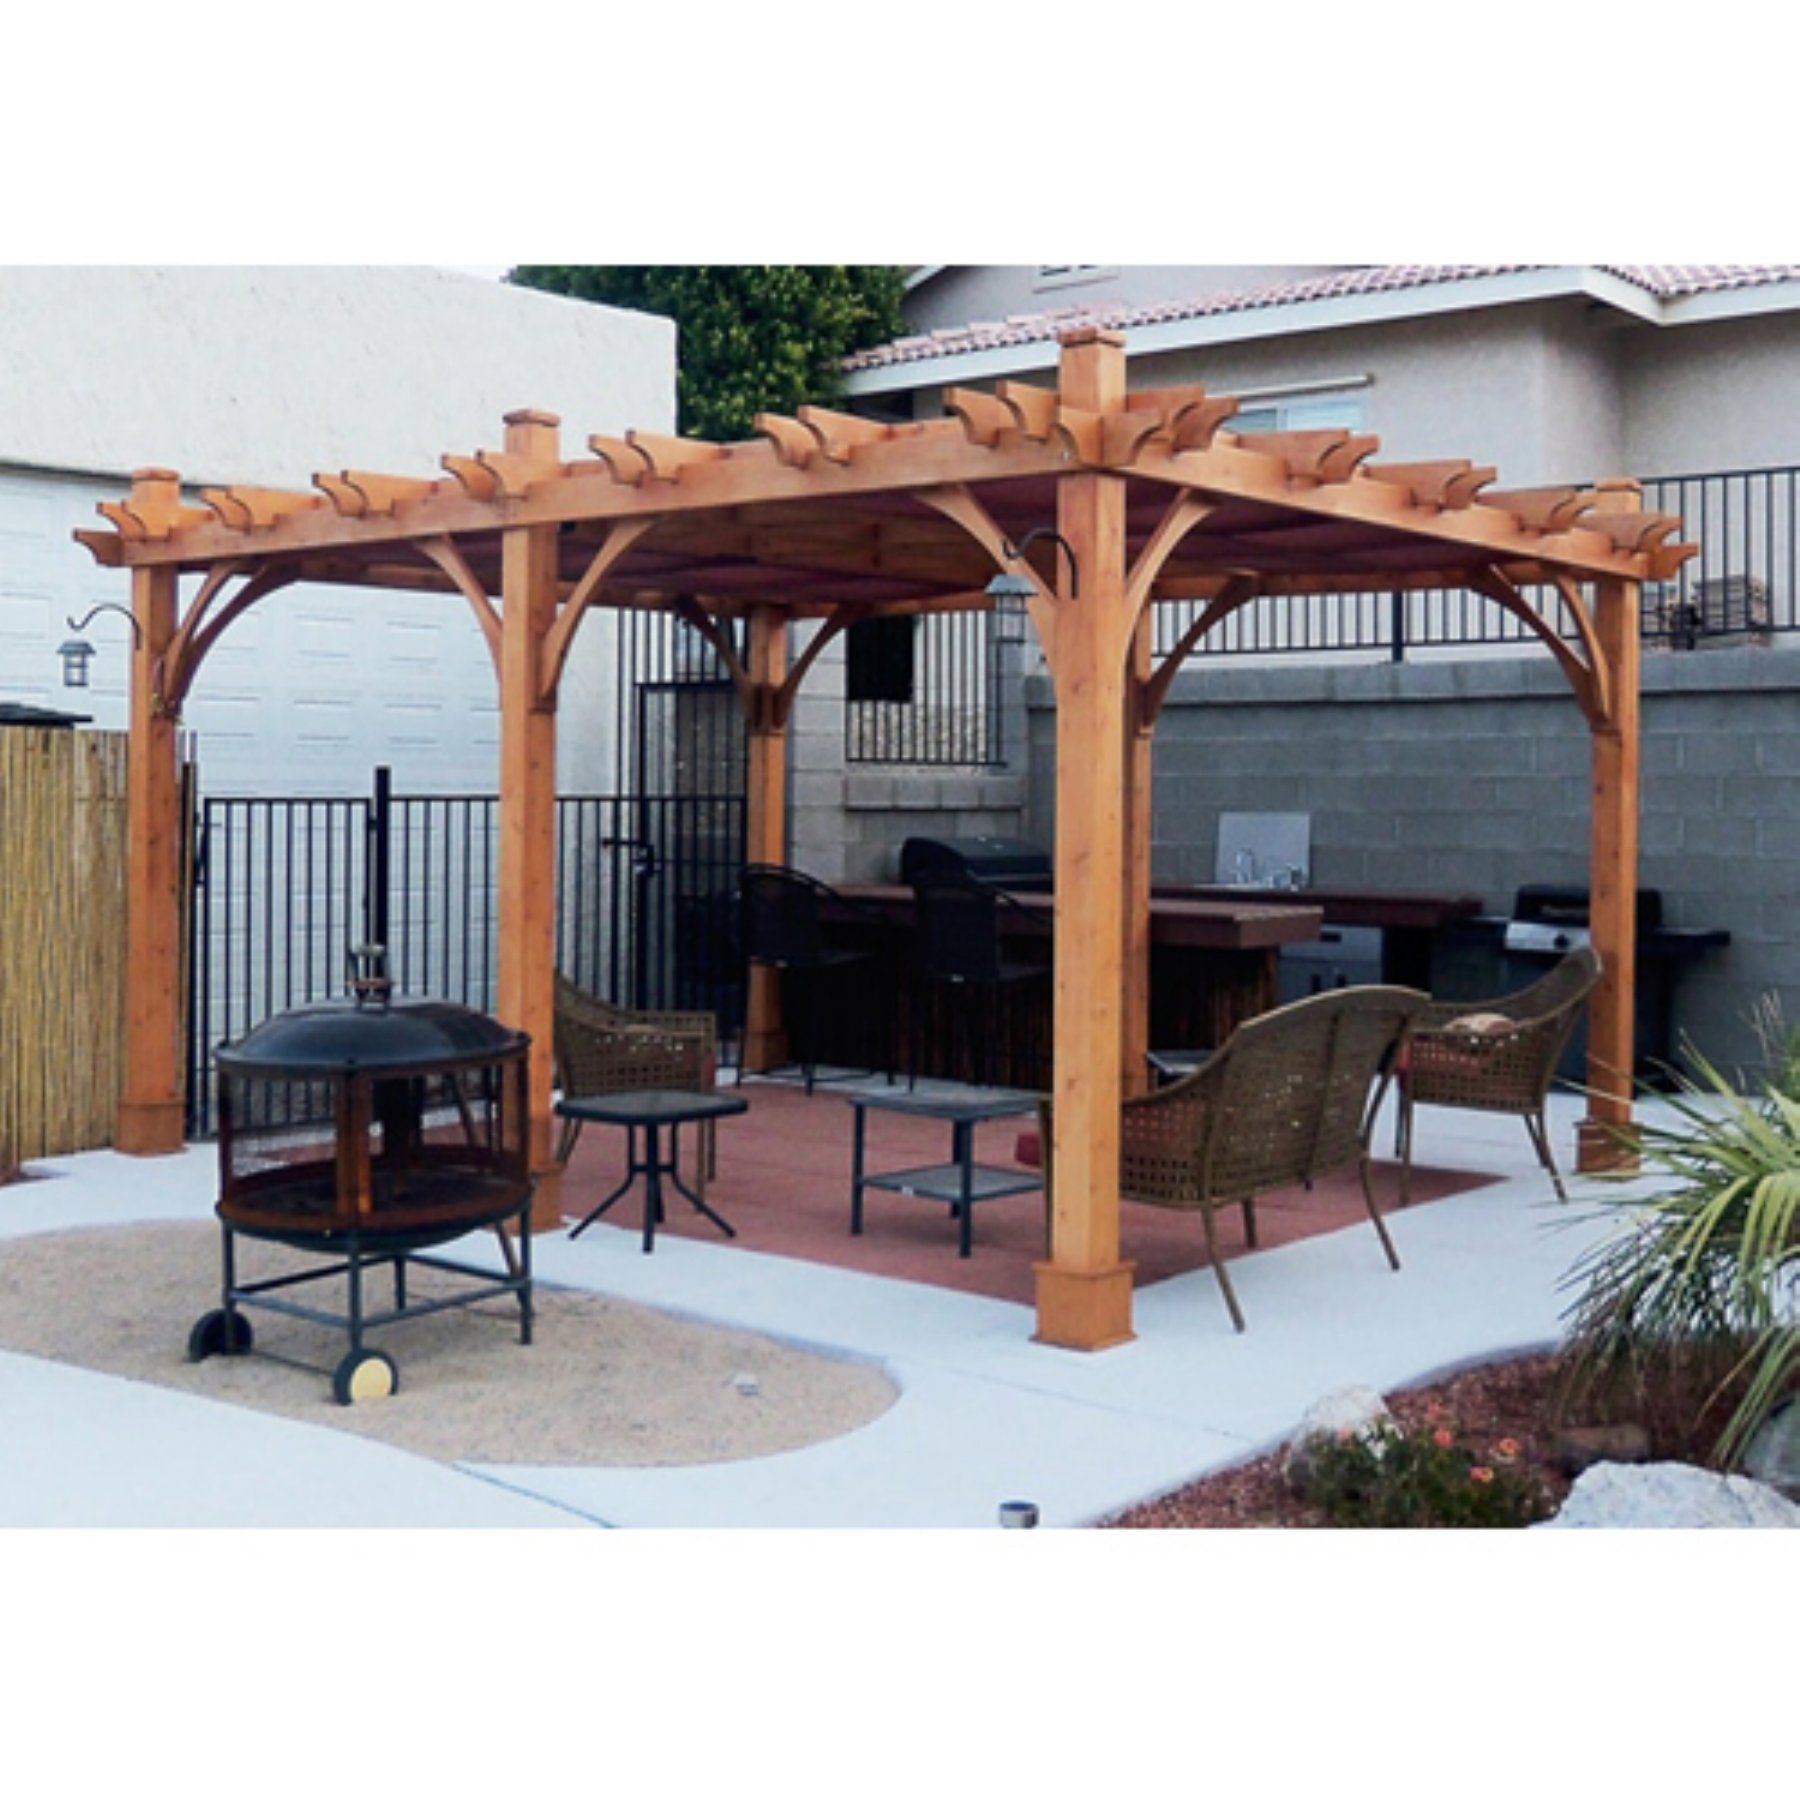 Outdoor Living Today Breeze 12 X 16 Ft Pergola Wood Pergola Pergola Pergola Plans